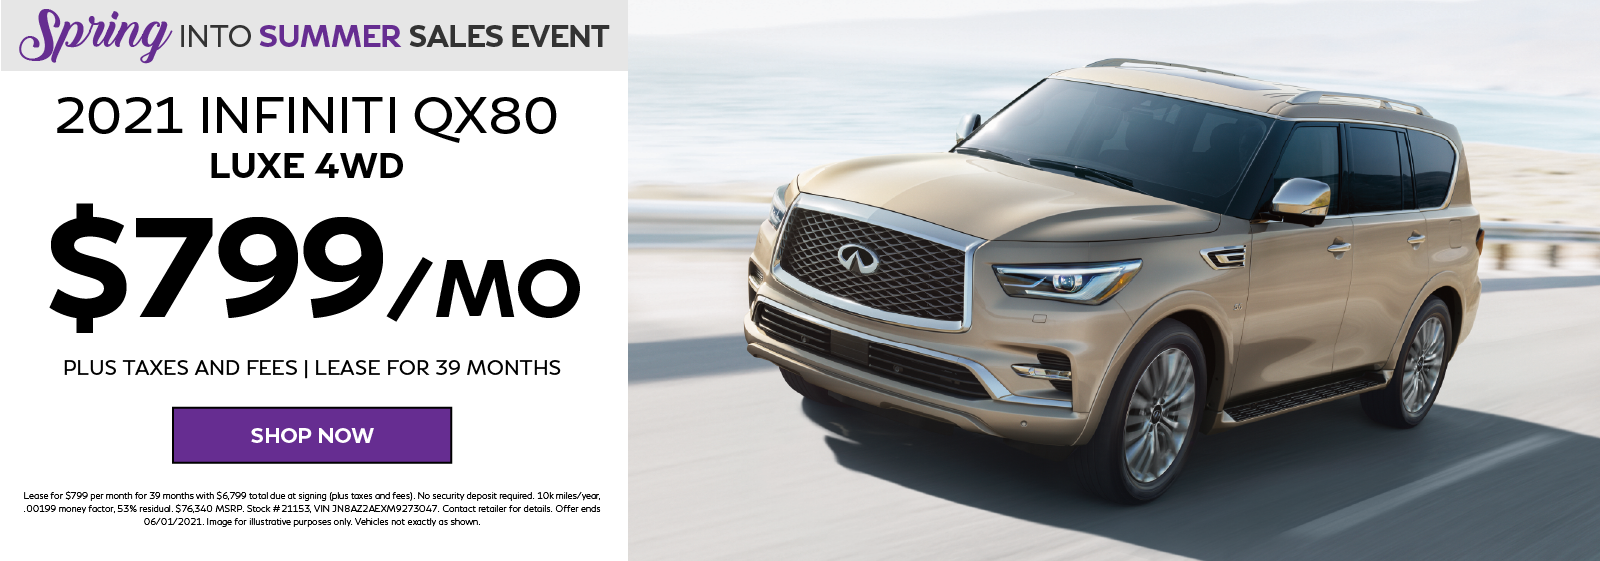 2021 INFINITI QX80 LUXE 4WD Lease Offer. Click to shop now.